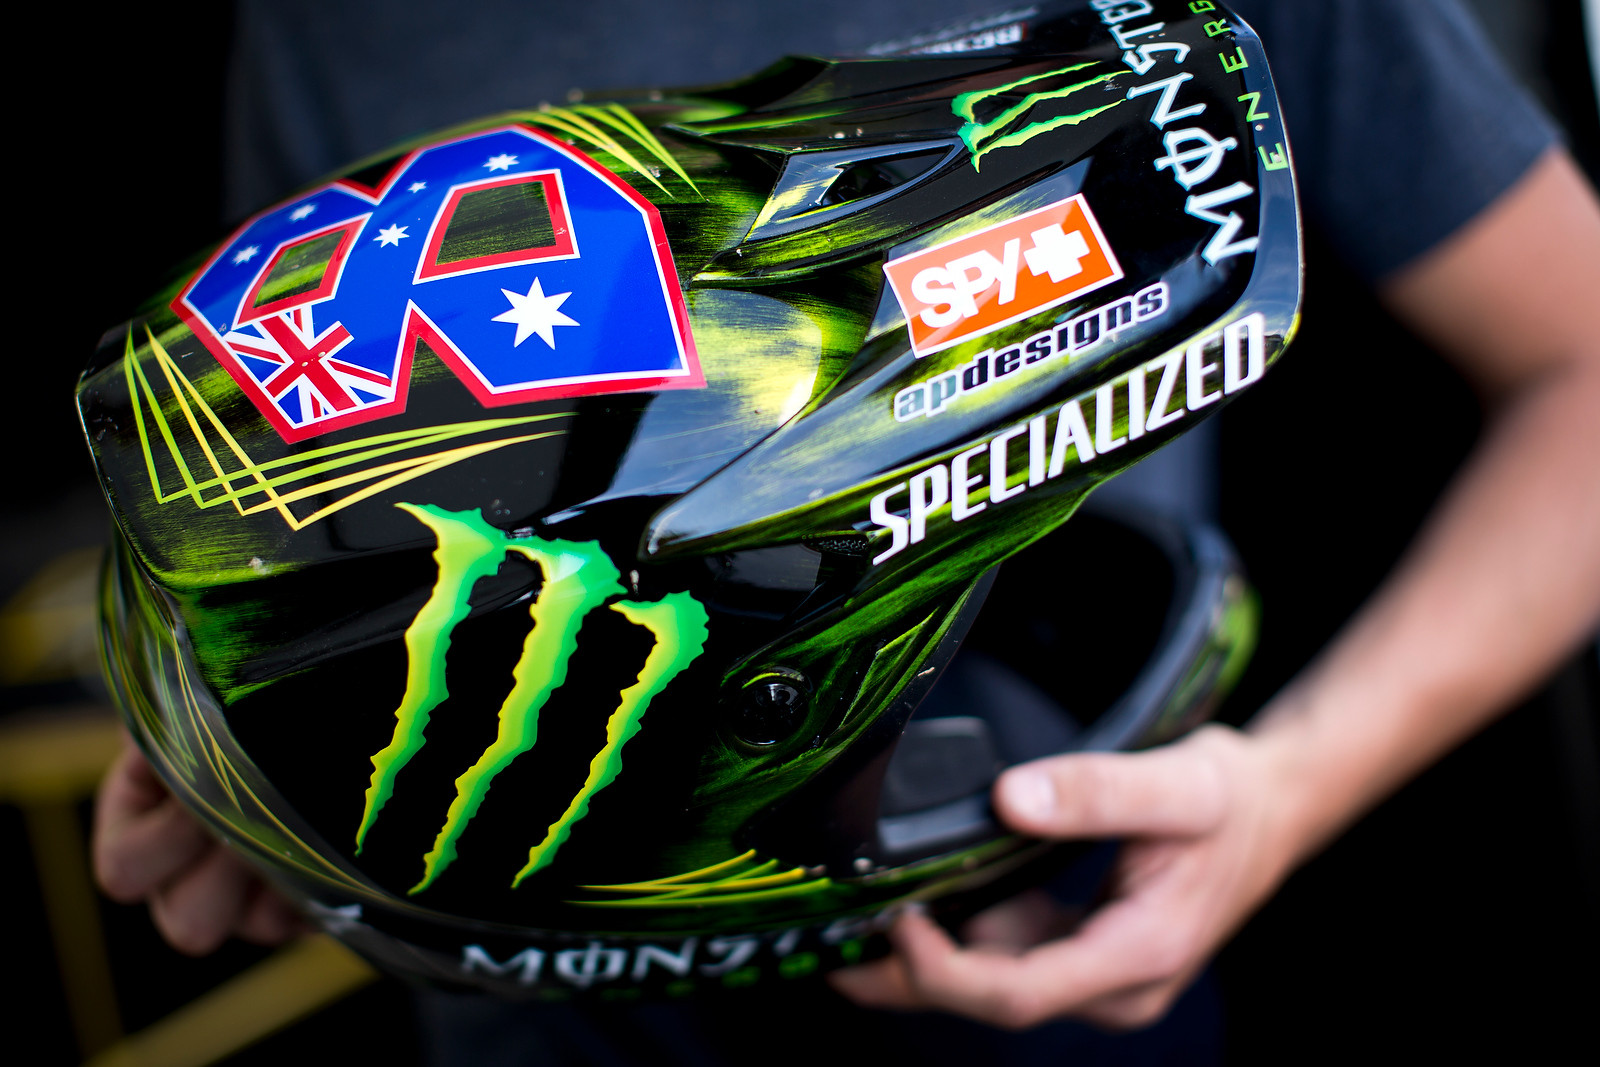 Troy Brosnan's World Champs Helmet - New Kits and Gear for 2012 World Championships - Mountain Biking Pictures - Vital MTB